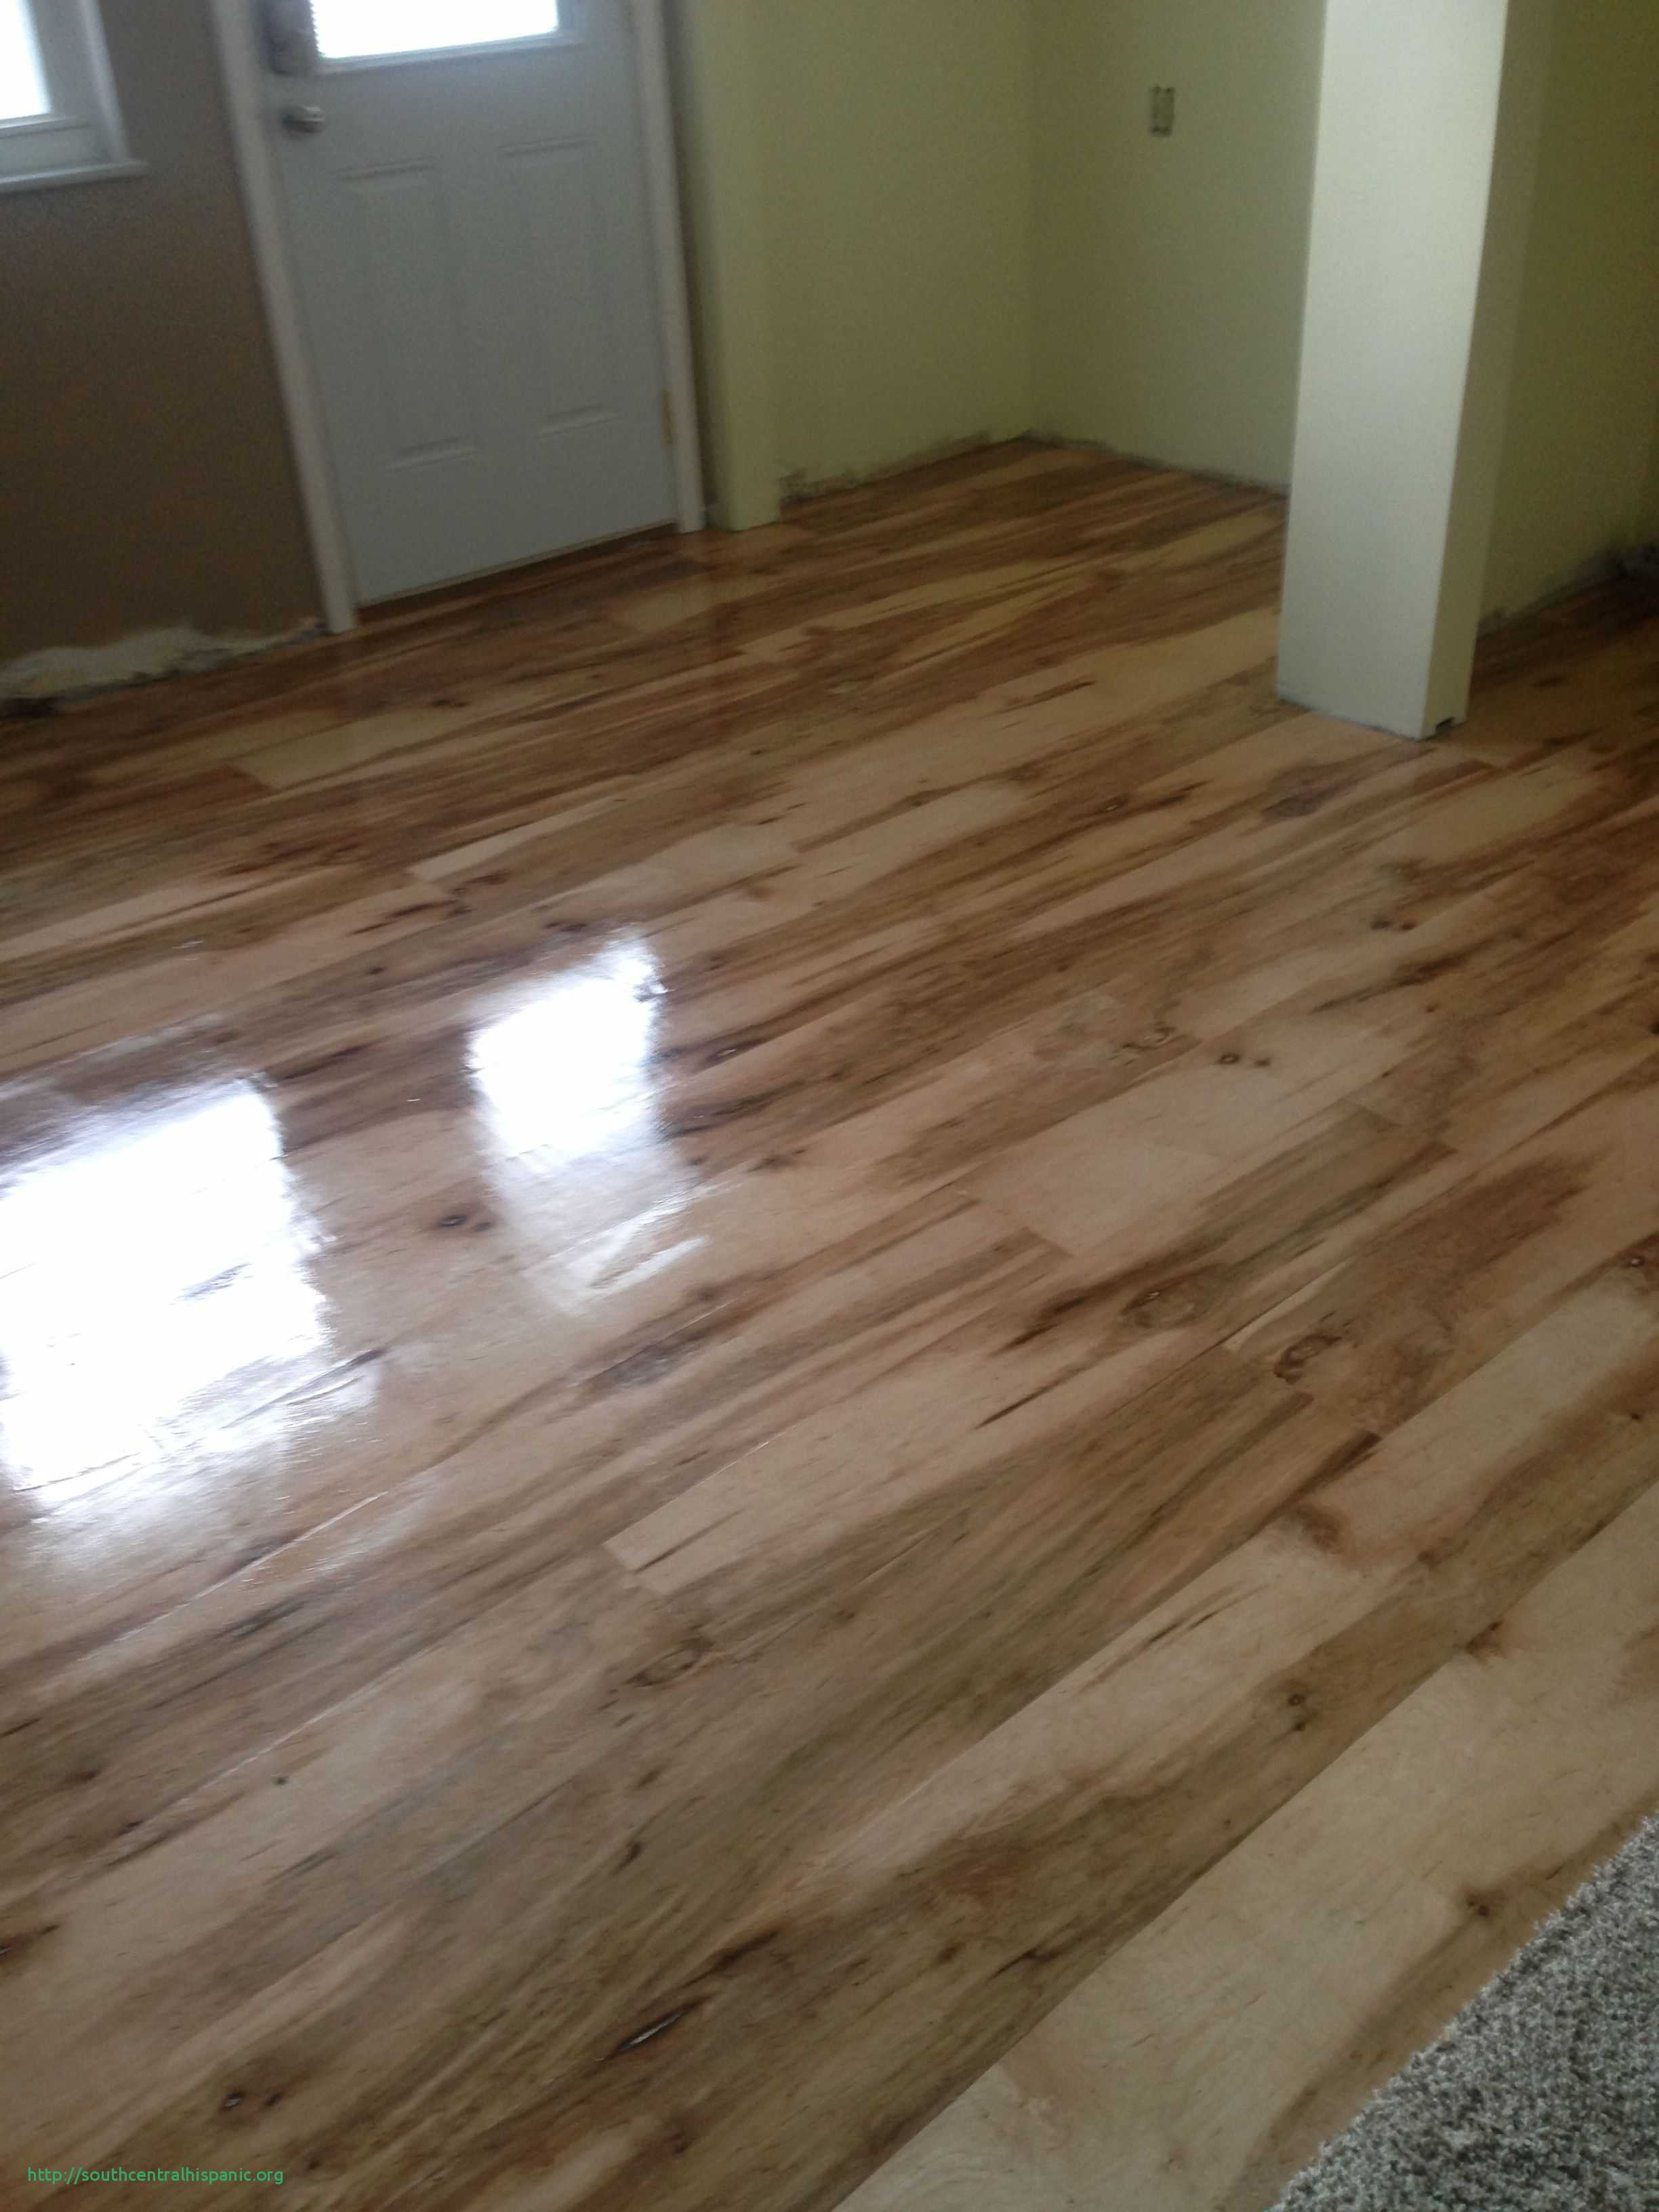 laminate flooring vs hardwood of laminate flooring chesterfield inspirant engaging discount hardwood pertaining to laminate flooring chesterfield inspirant engaging discount hardwood flooring 5 where to buy inspirational 0d